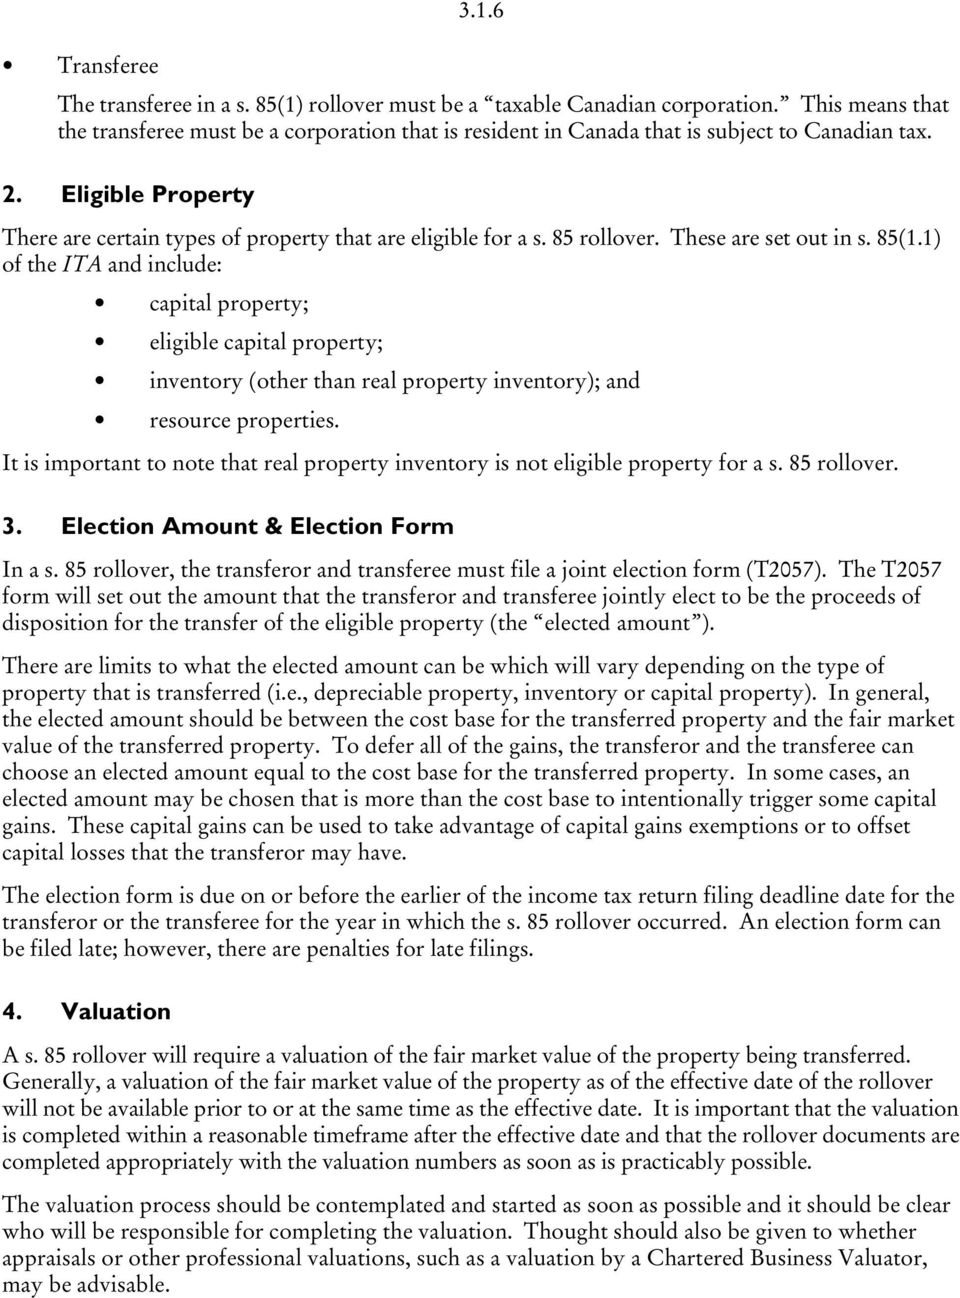 85 rollover. These are set out in s. 85(1.1) of the ITA and include: capital property; eligible capital property; inventory (other than real property inventory); and resource properties.